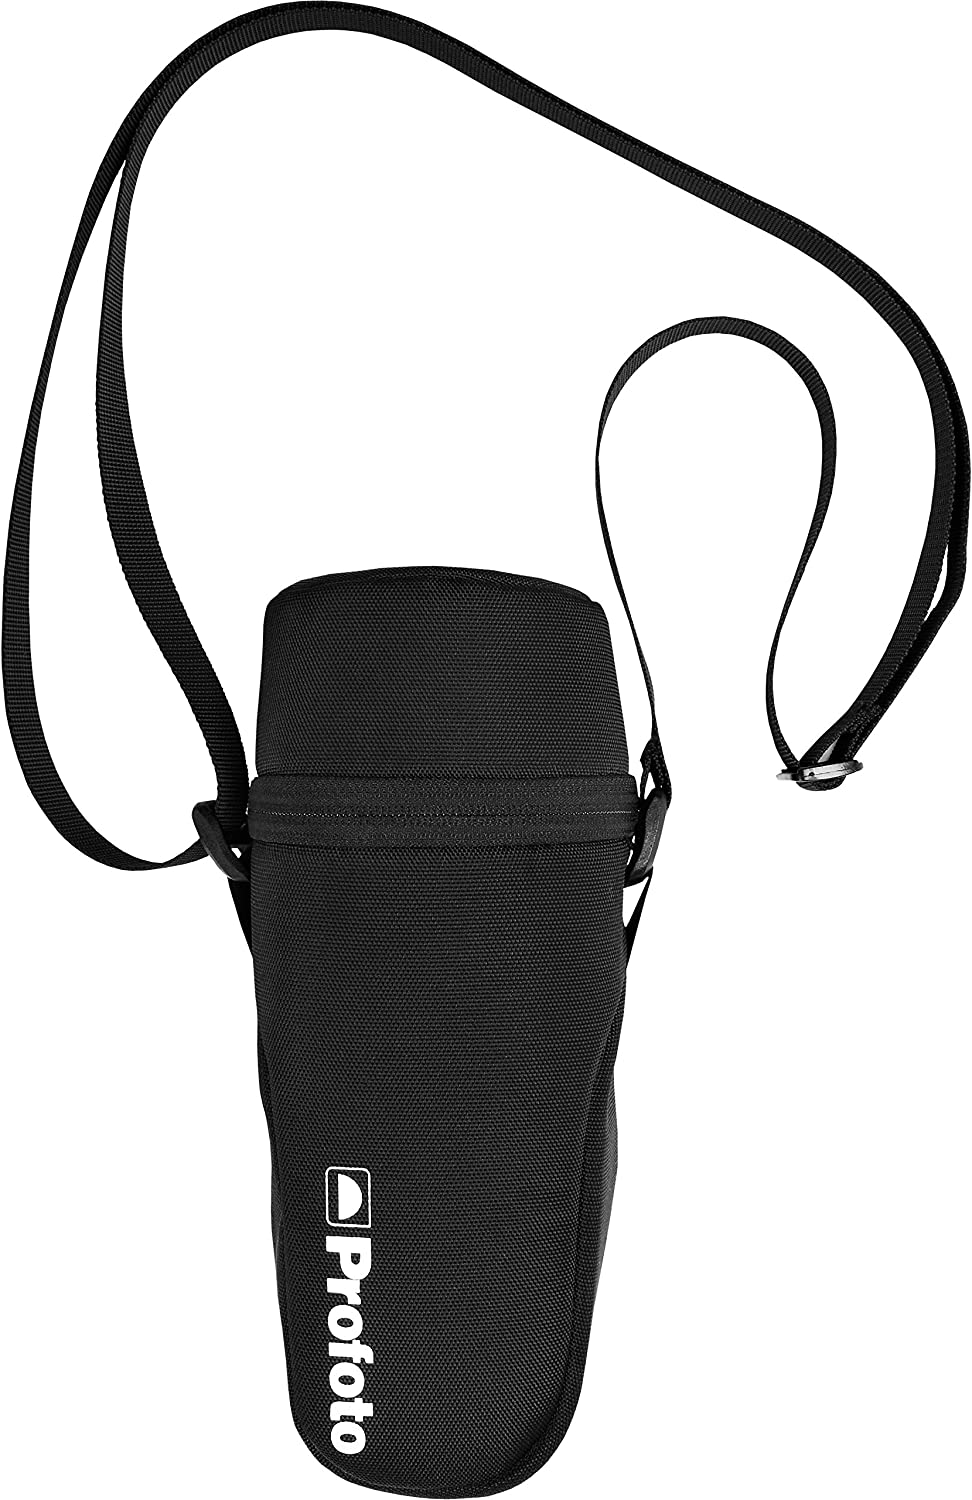 Profoto A1 Bag for A1 AirTTL On-Camera Flash